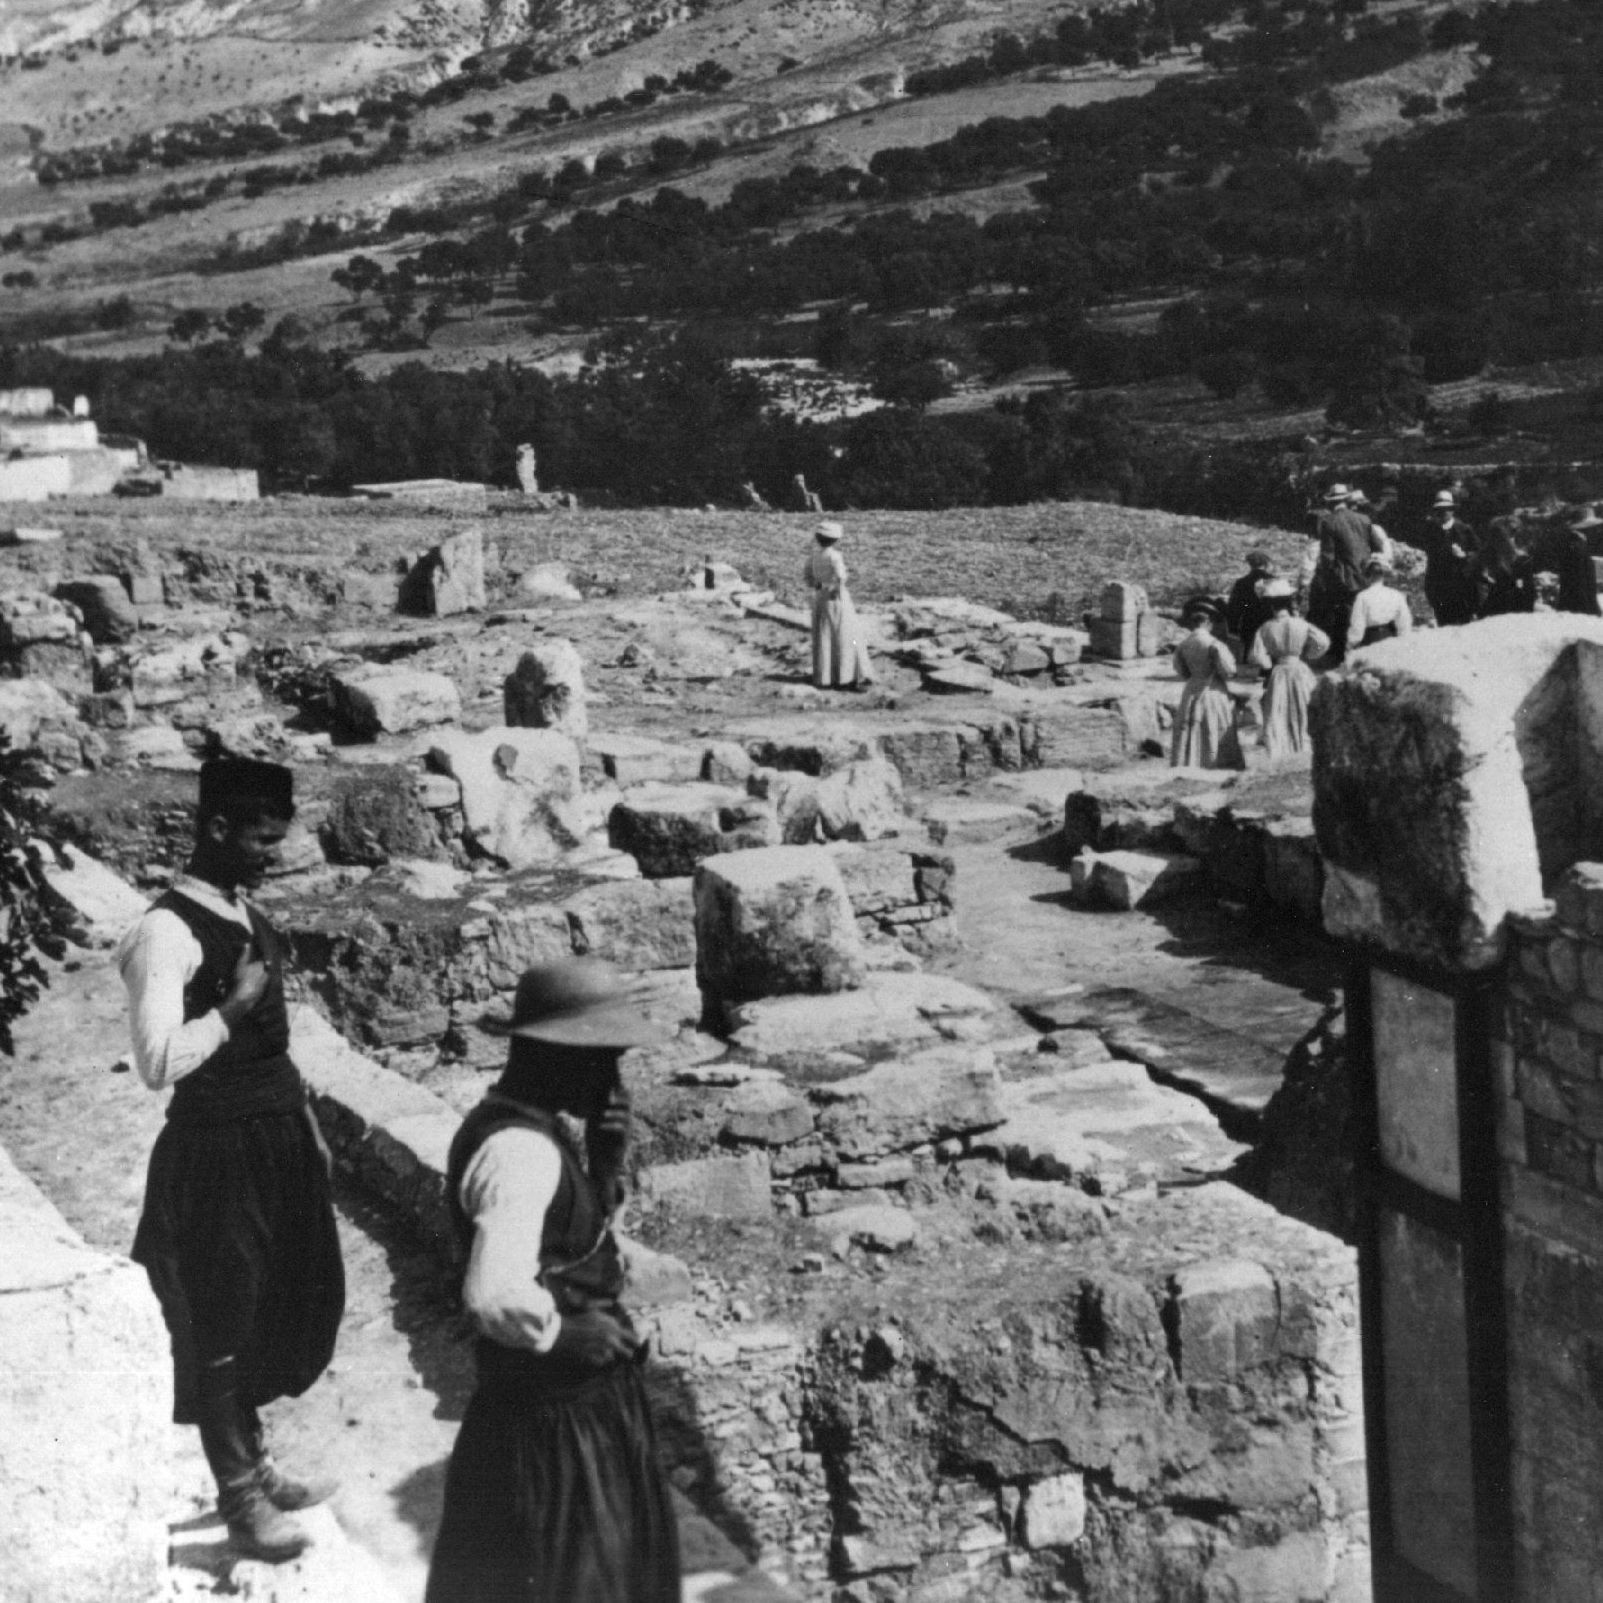 The Linear B tablets were discovered in 1900 among the ruins of the Palace of Minos in Knossos, Crete, seen here in 1910.